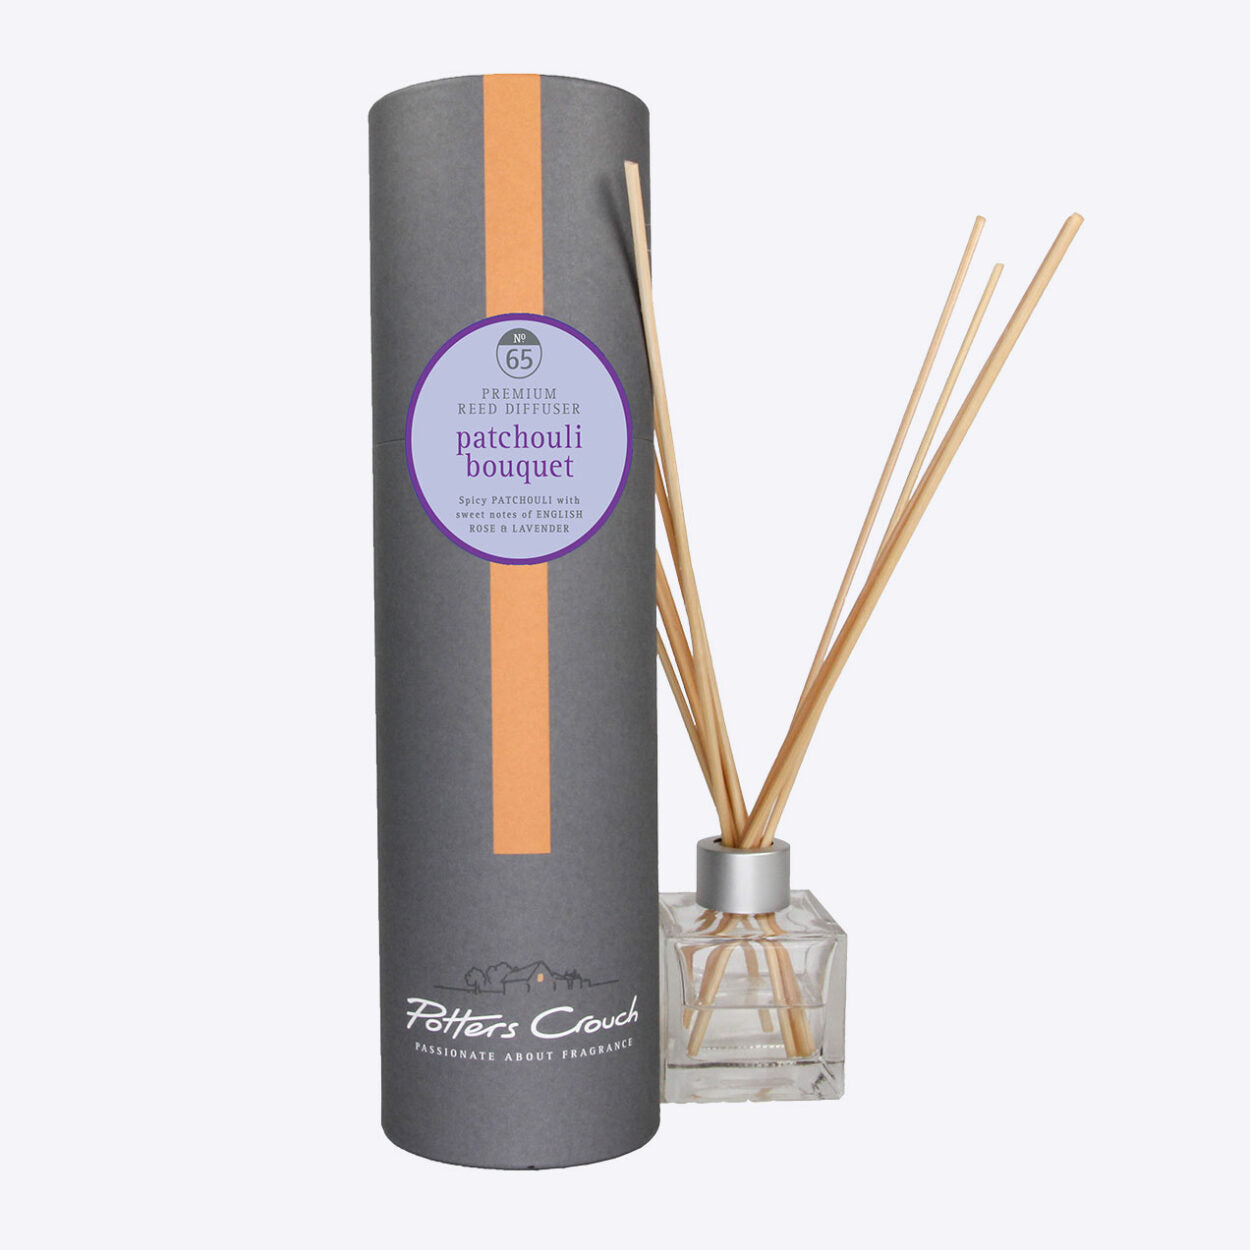 Patchouli Bouquet Scented Reed Diffuser